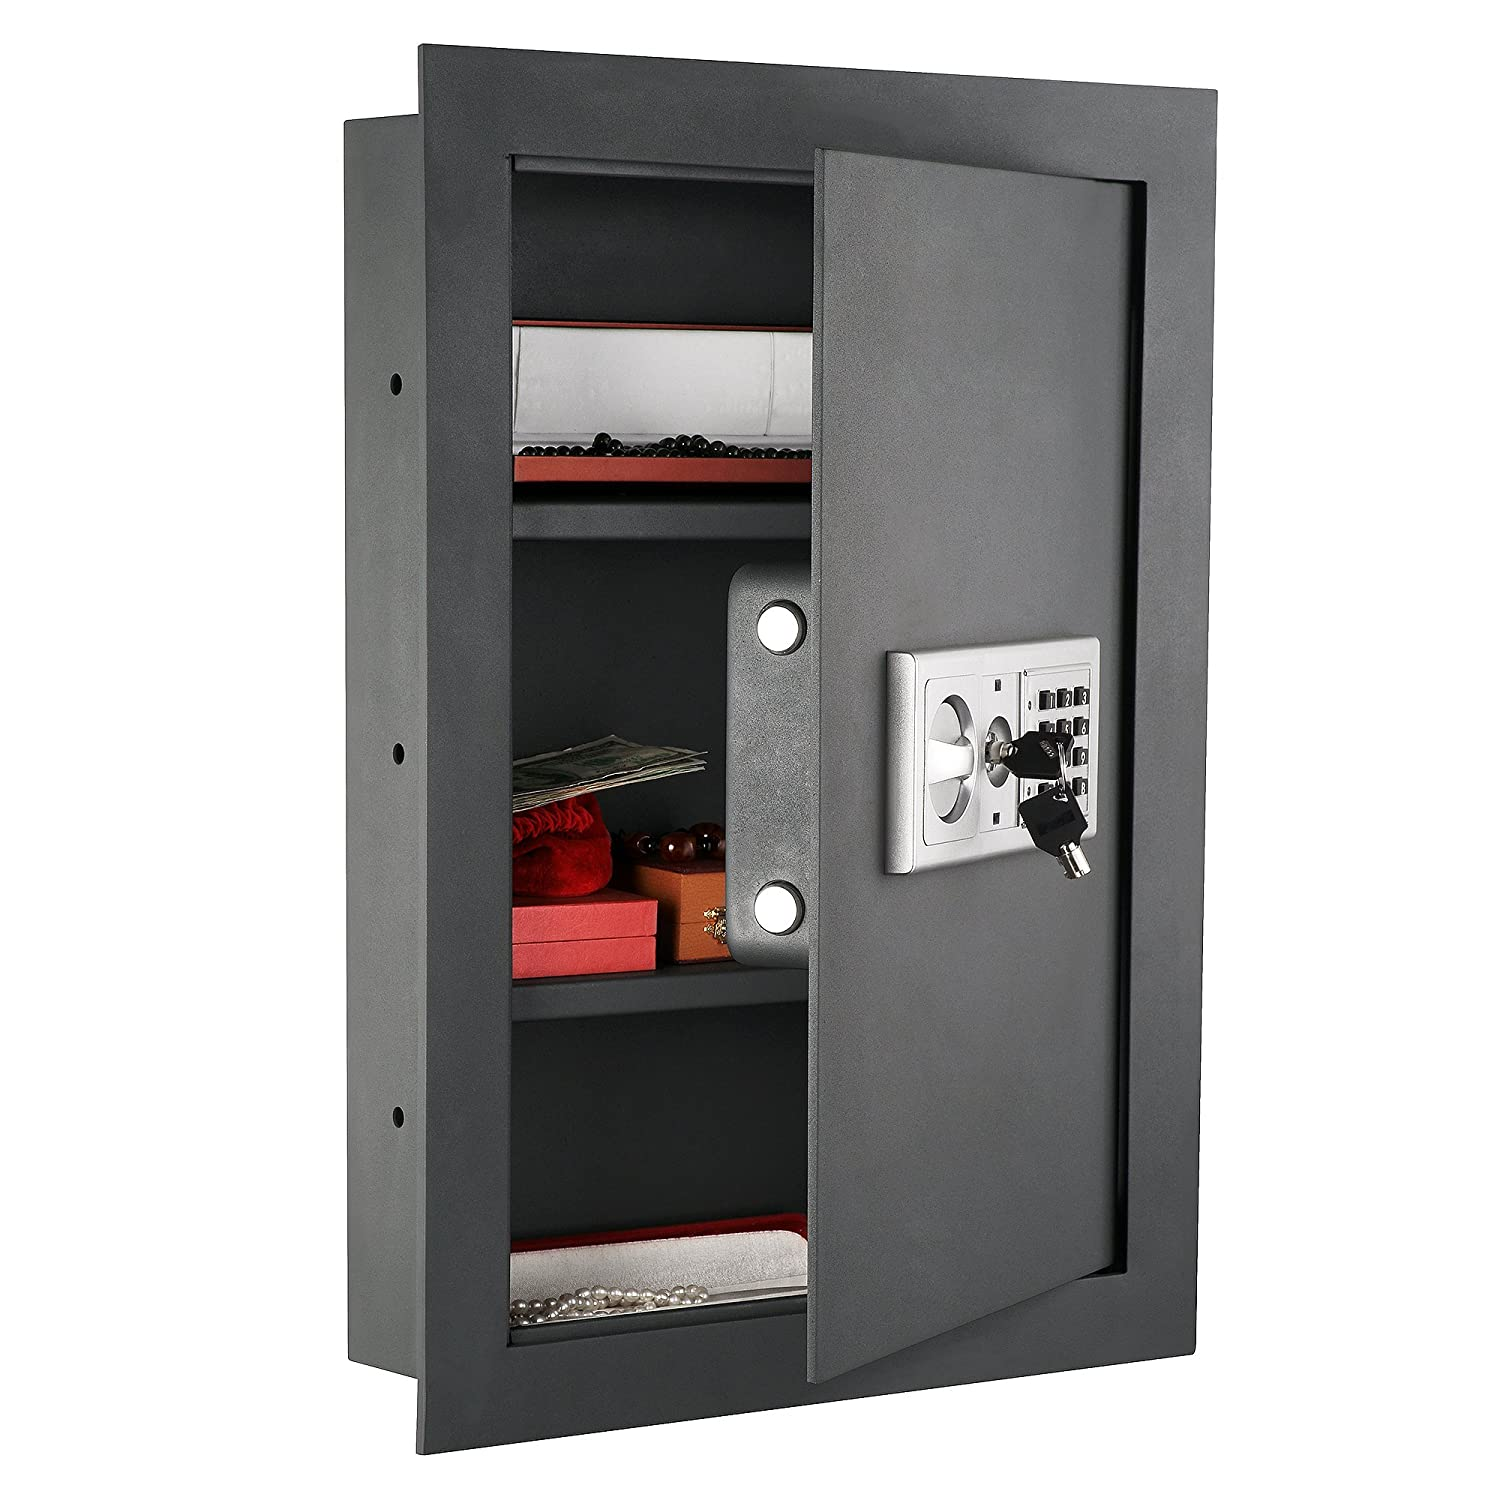 Paragon 7725 Flat Superior Electronic Hidden Wall Safe 83 CF for